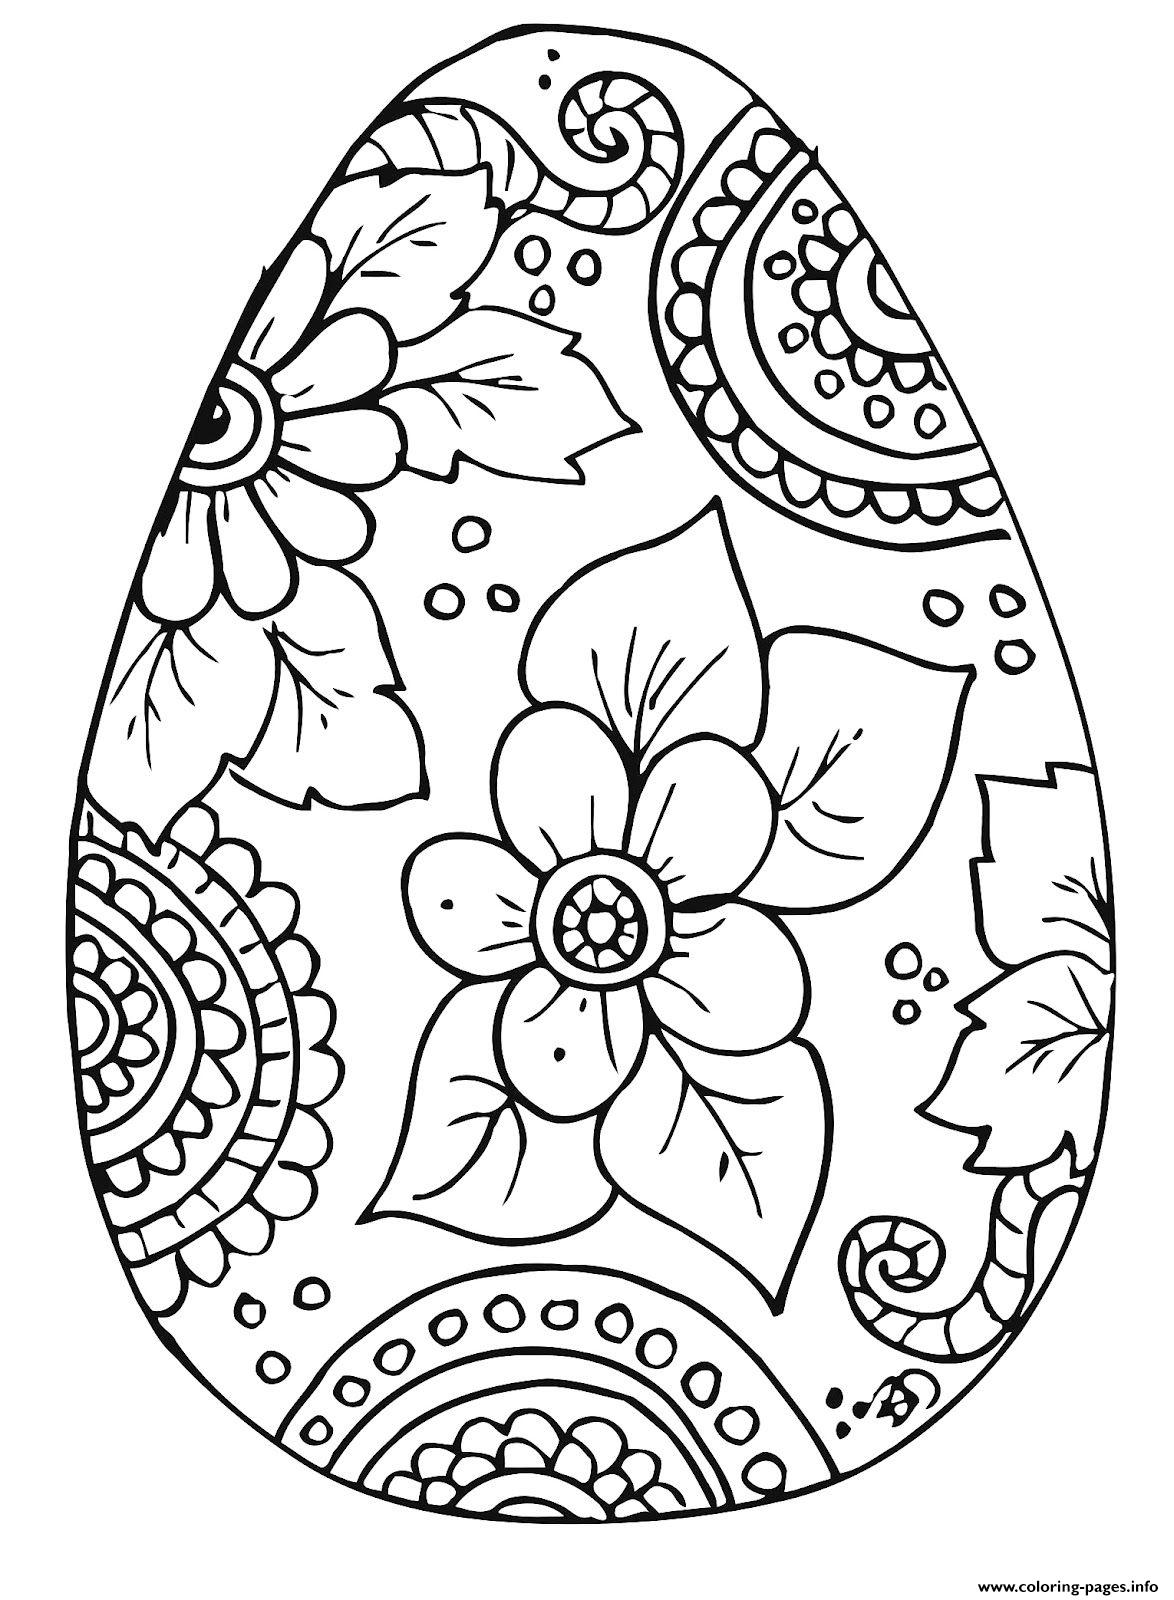 - Beautiful Easter Egg With Flowers For Adult Coloring Pages Printable